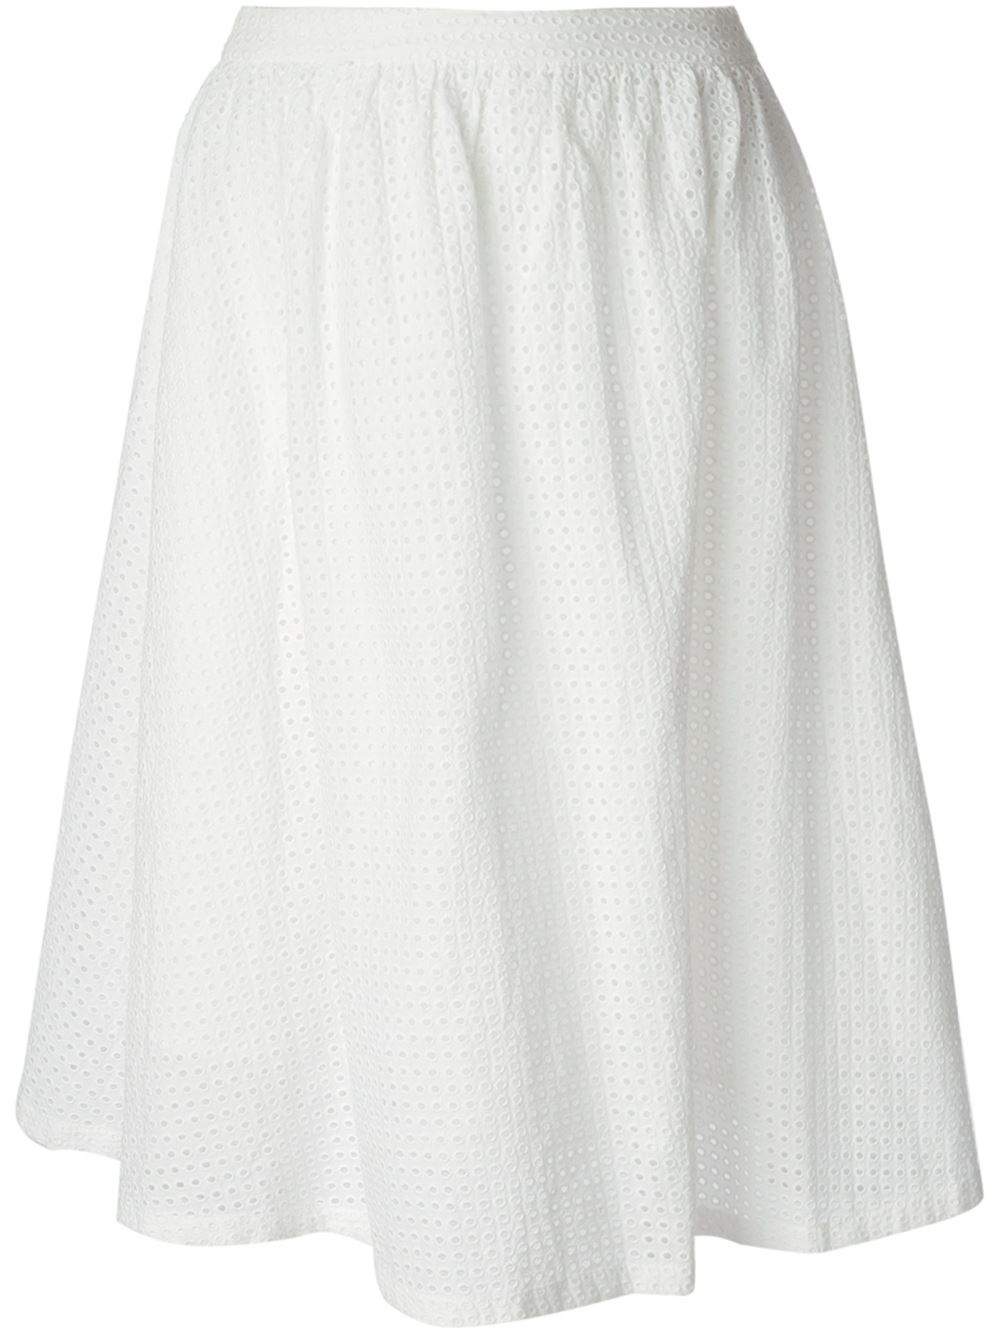 ymc high waist flared skirt in white lyst